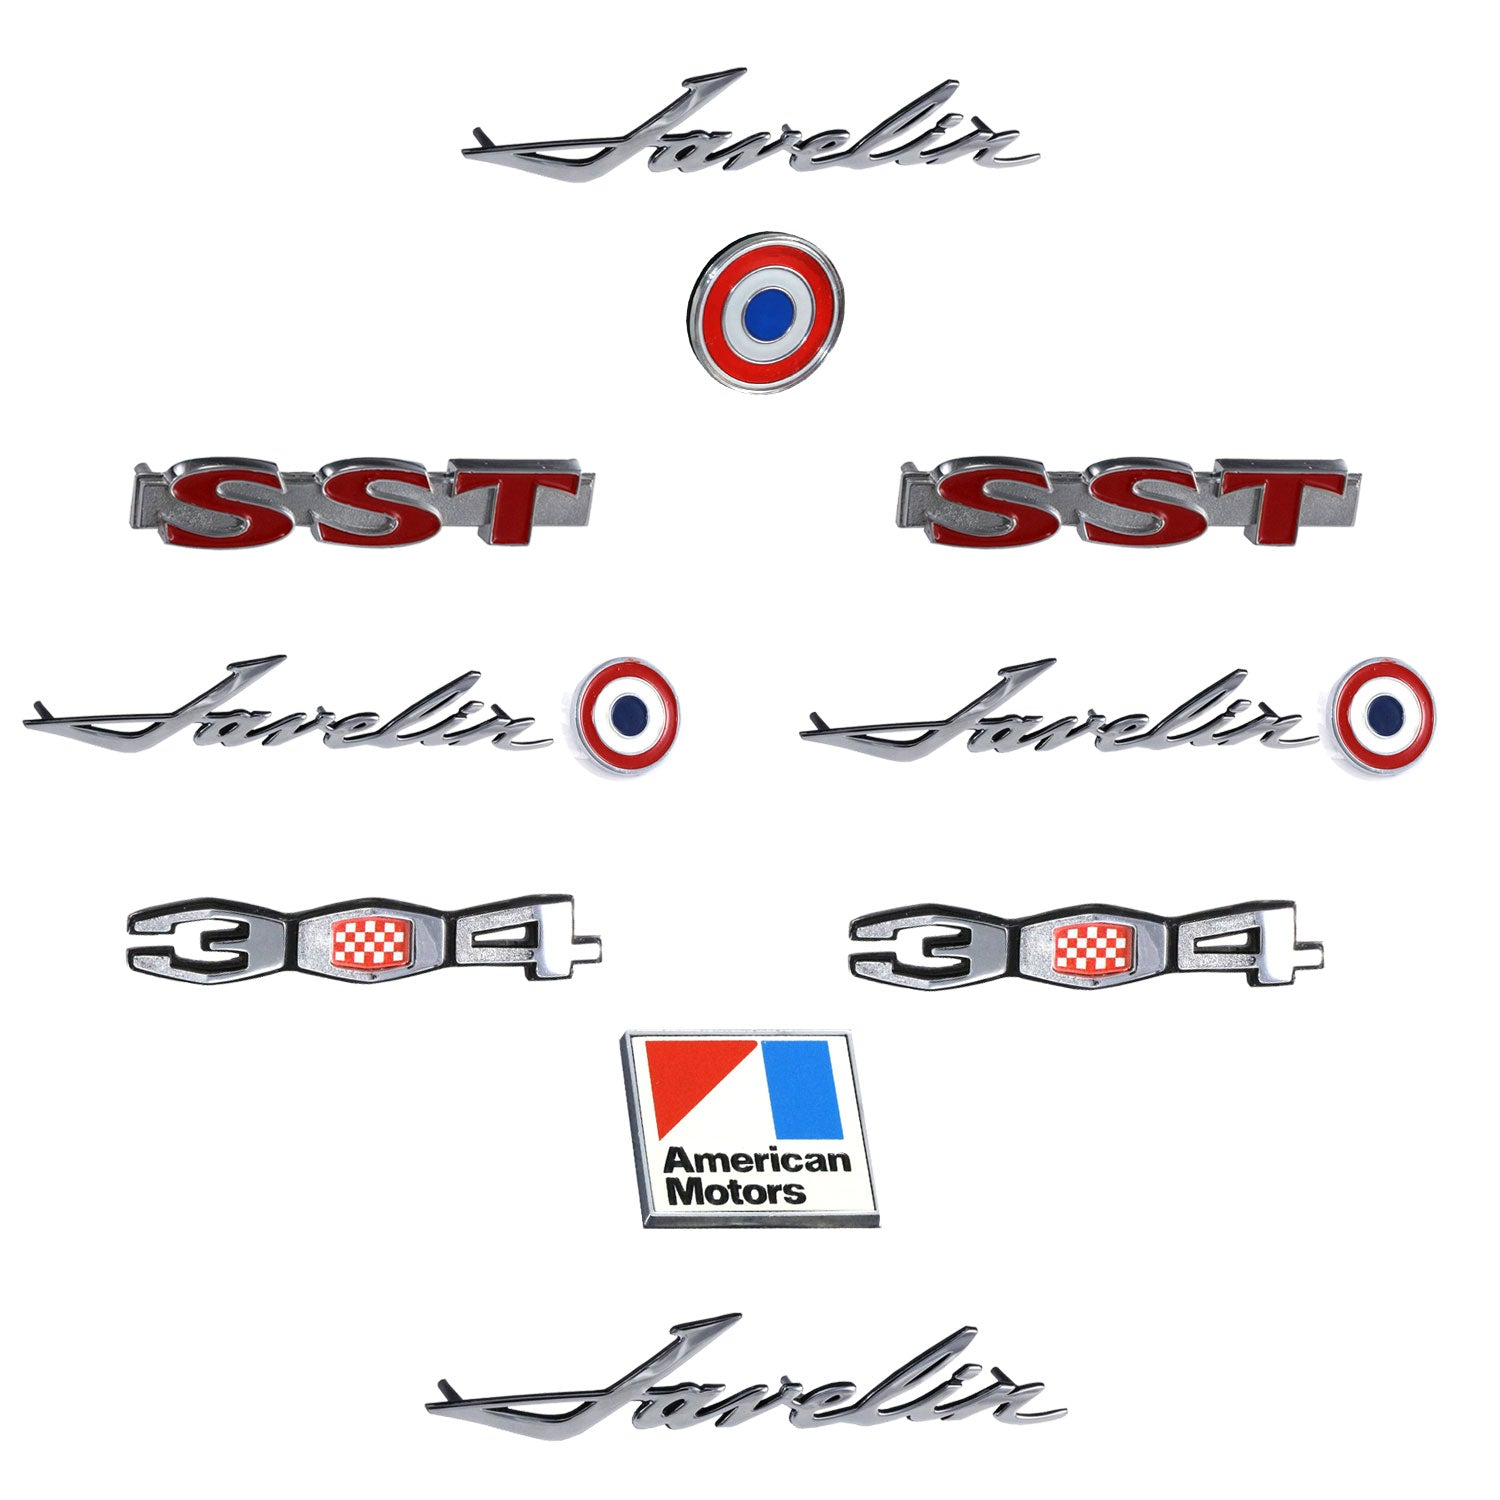 Late 1970 Amc Javelin Sst 304 Complete Exterior Emblem Kit Lives Amx Wiring Diagram